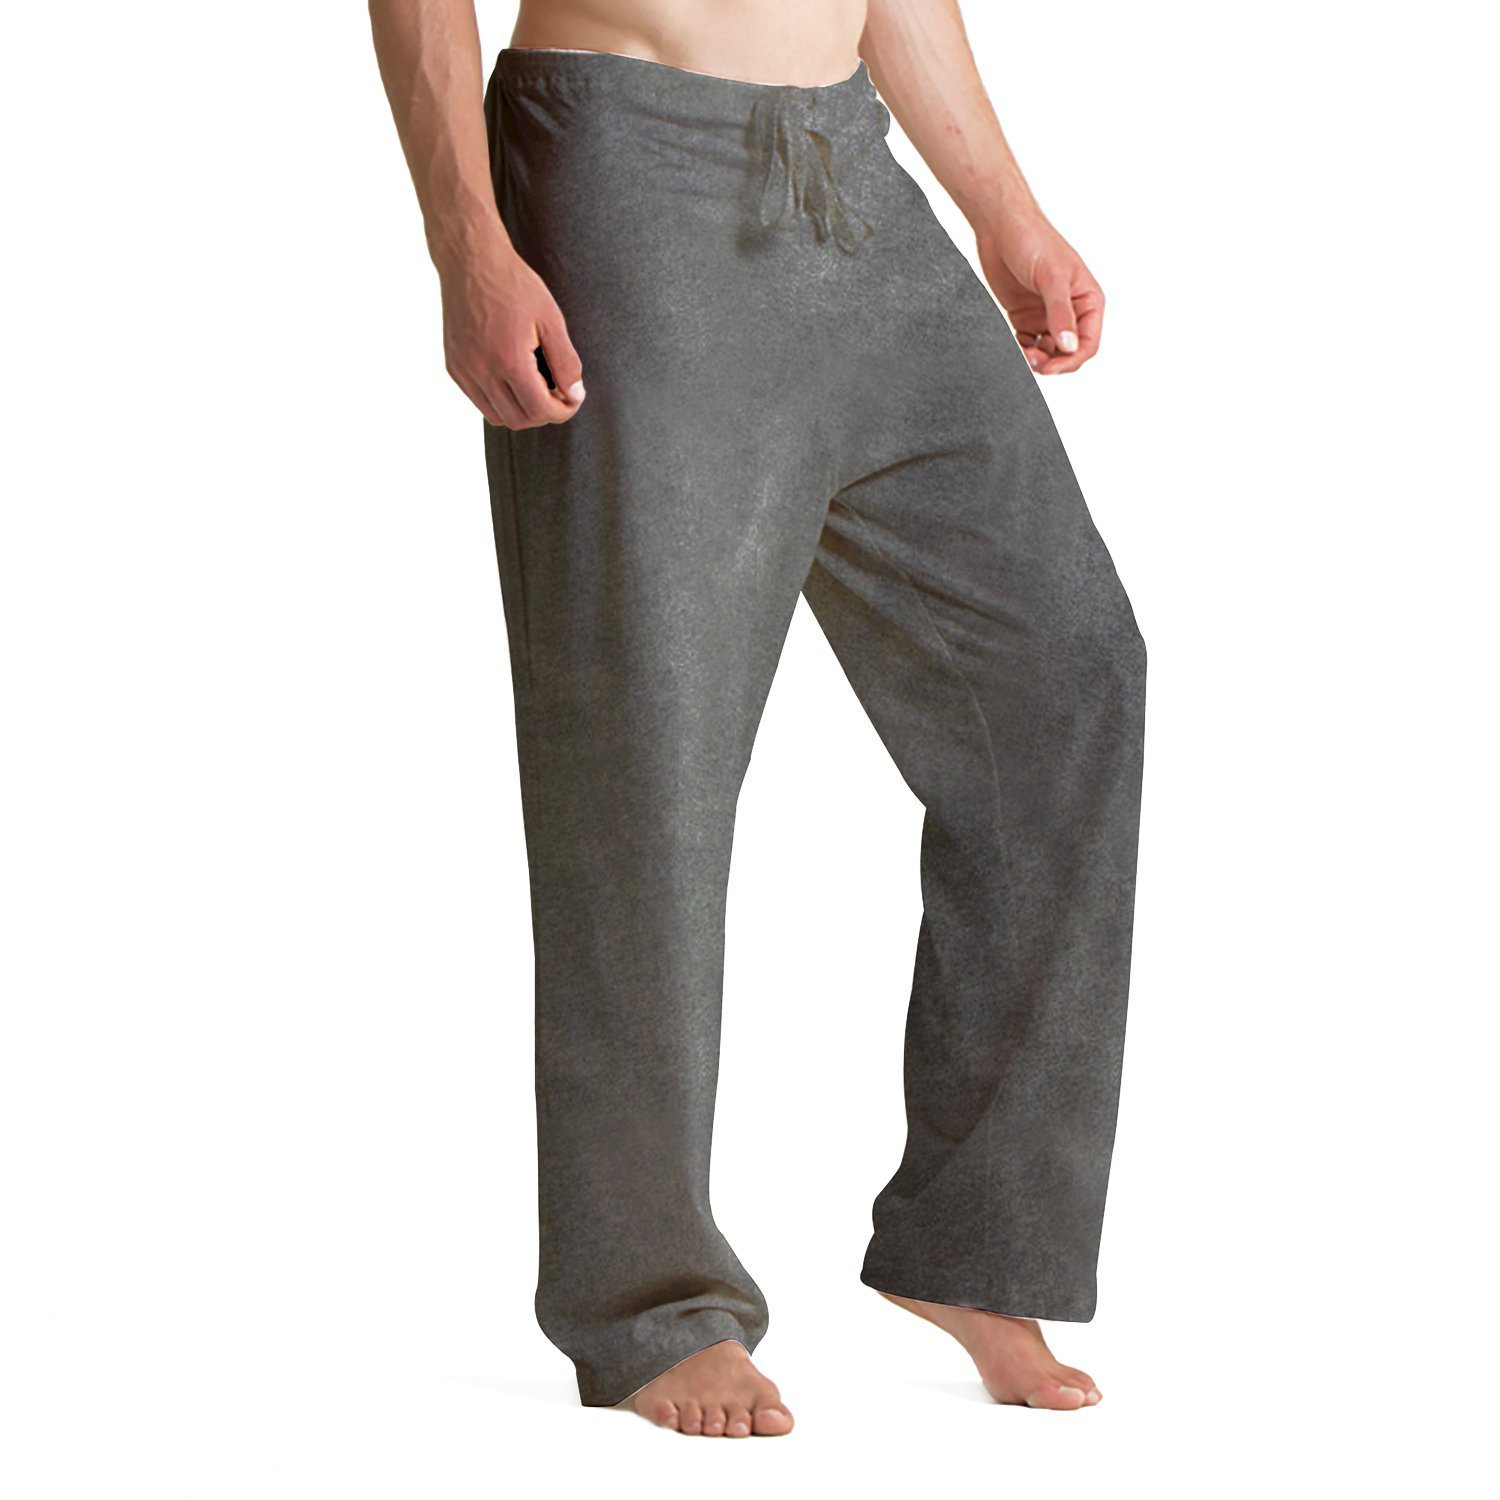 1286ab5934a7 Cottonique Mens Drawstring Lounge Pants Clothing, Shoes & Jewelry